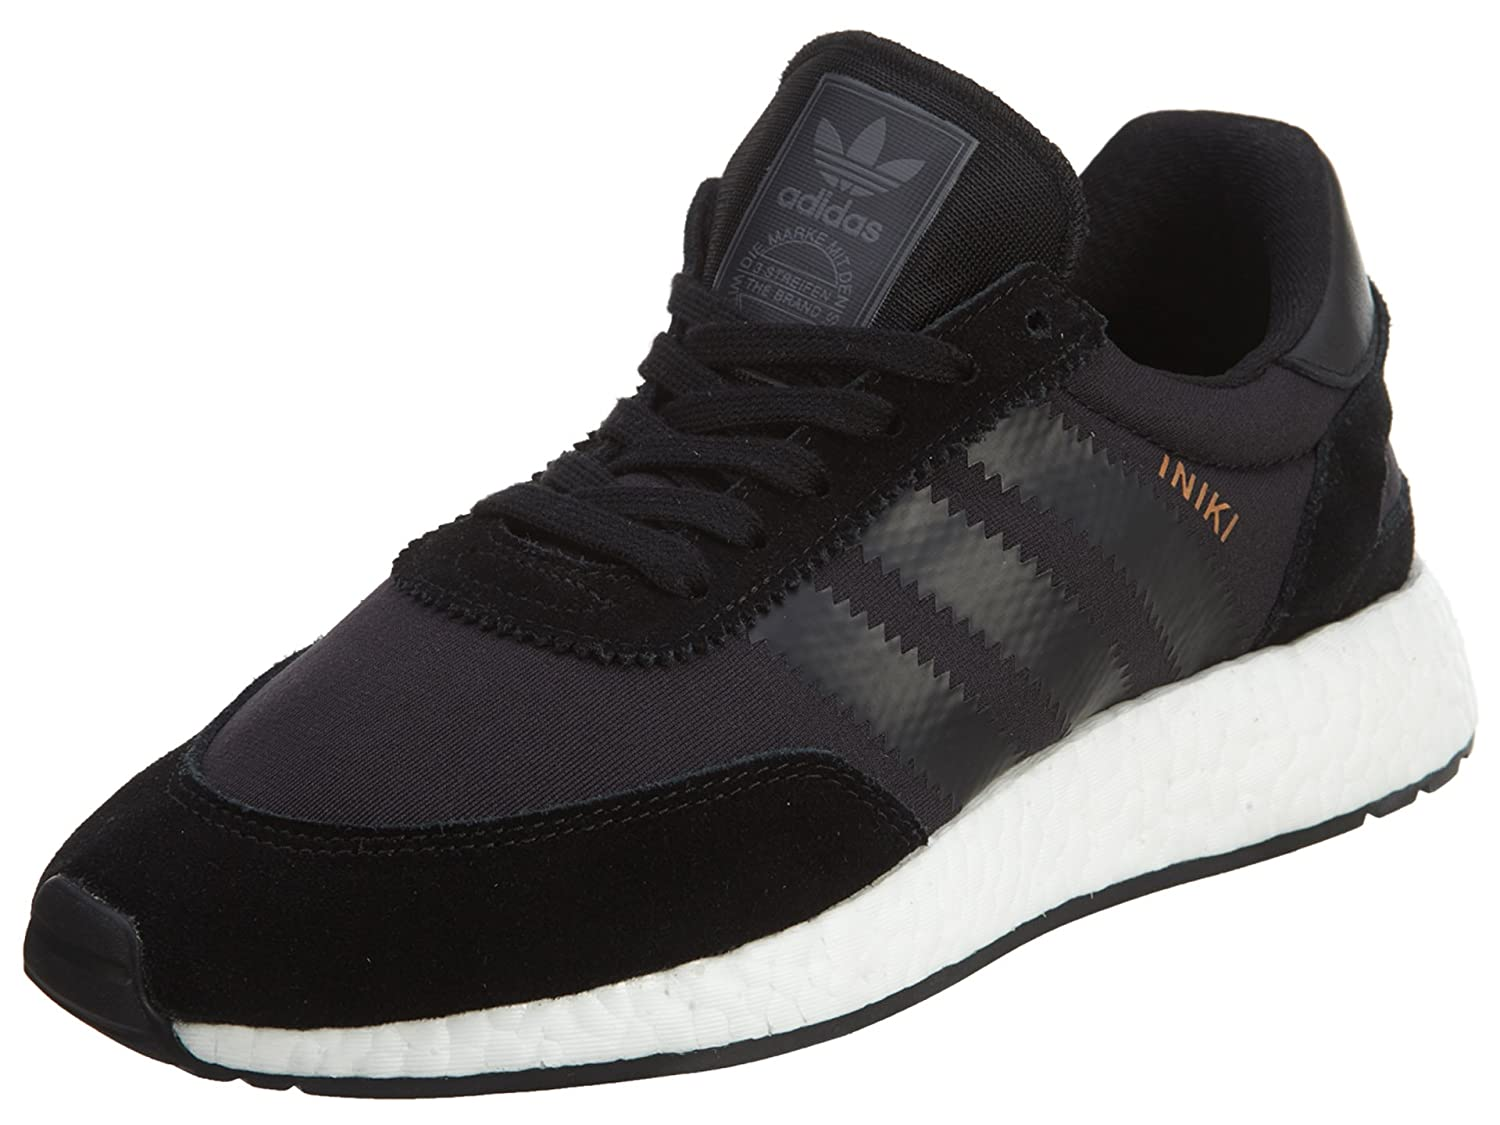 Adidas Mens Iniki Runner Black/White Nylon